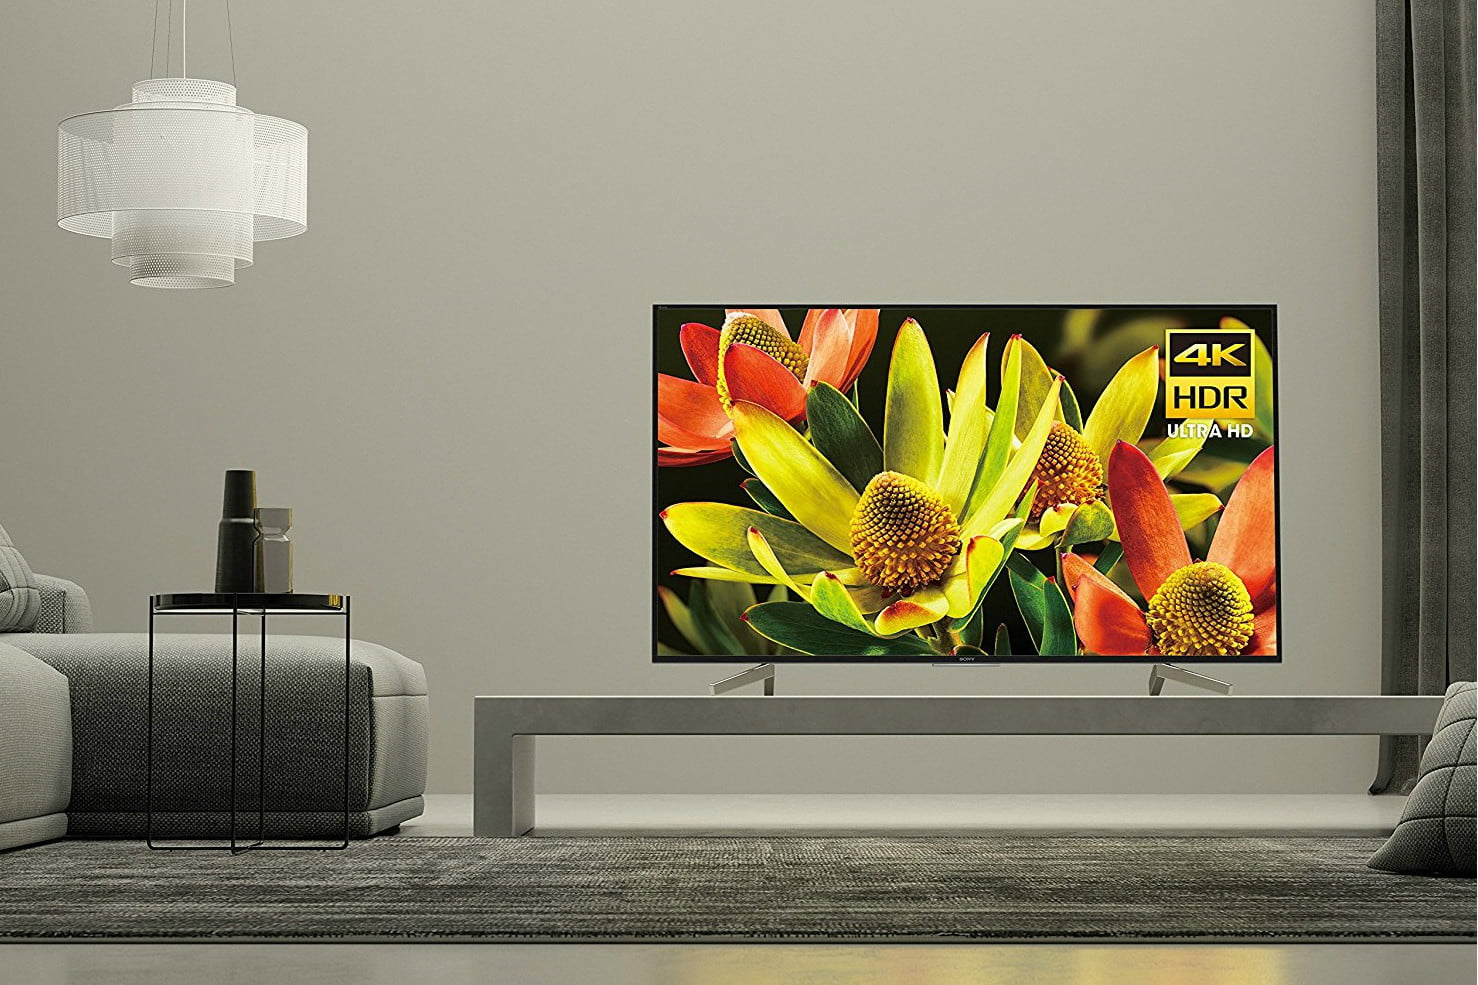 Walmart has knocked an astonishing $900 off this 70-inch Sony Bravia 4K TV